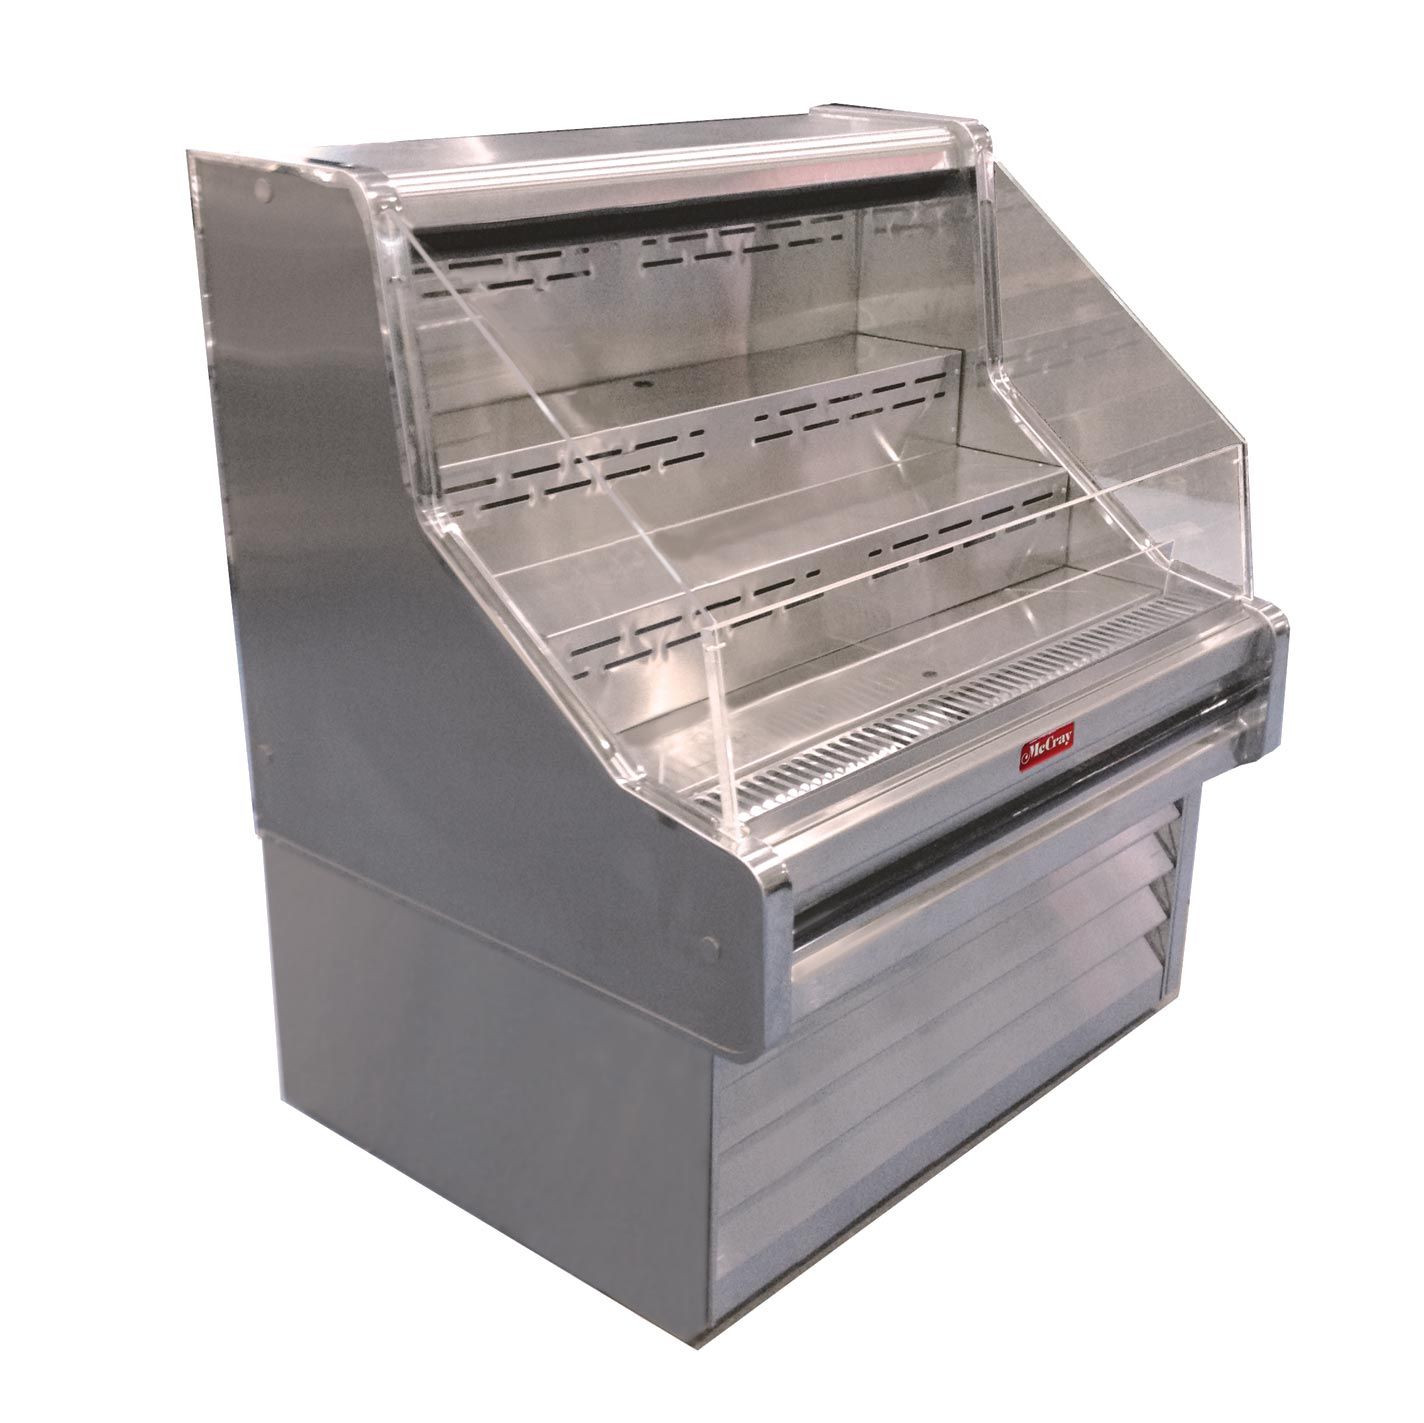 Howard-McCray R-OS35E-5-S merchandiser, open refrigerated display